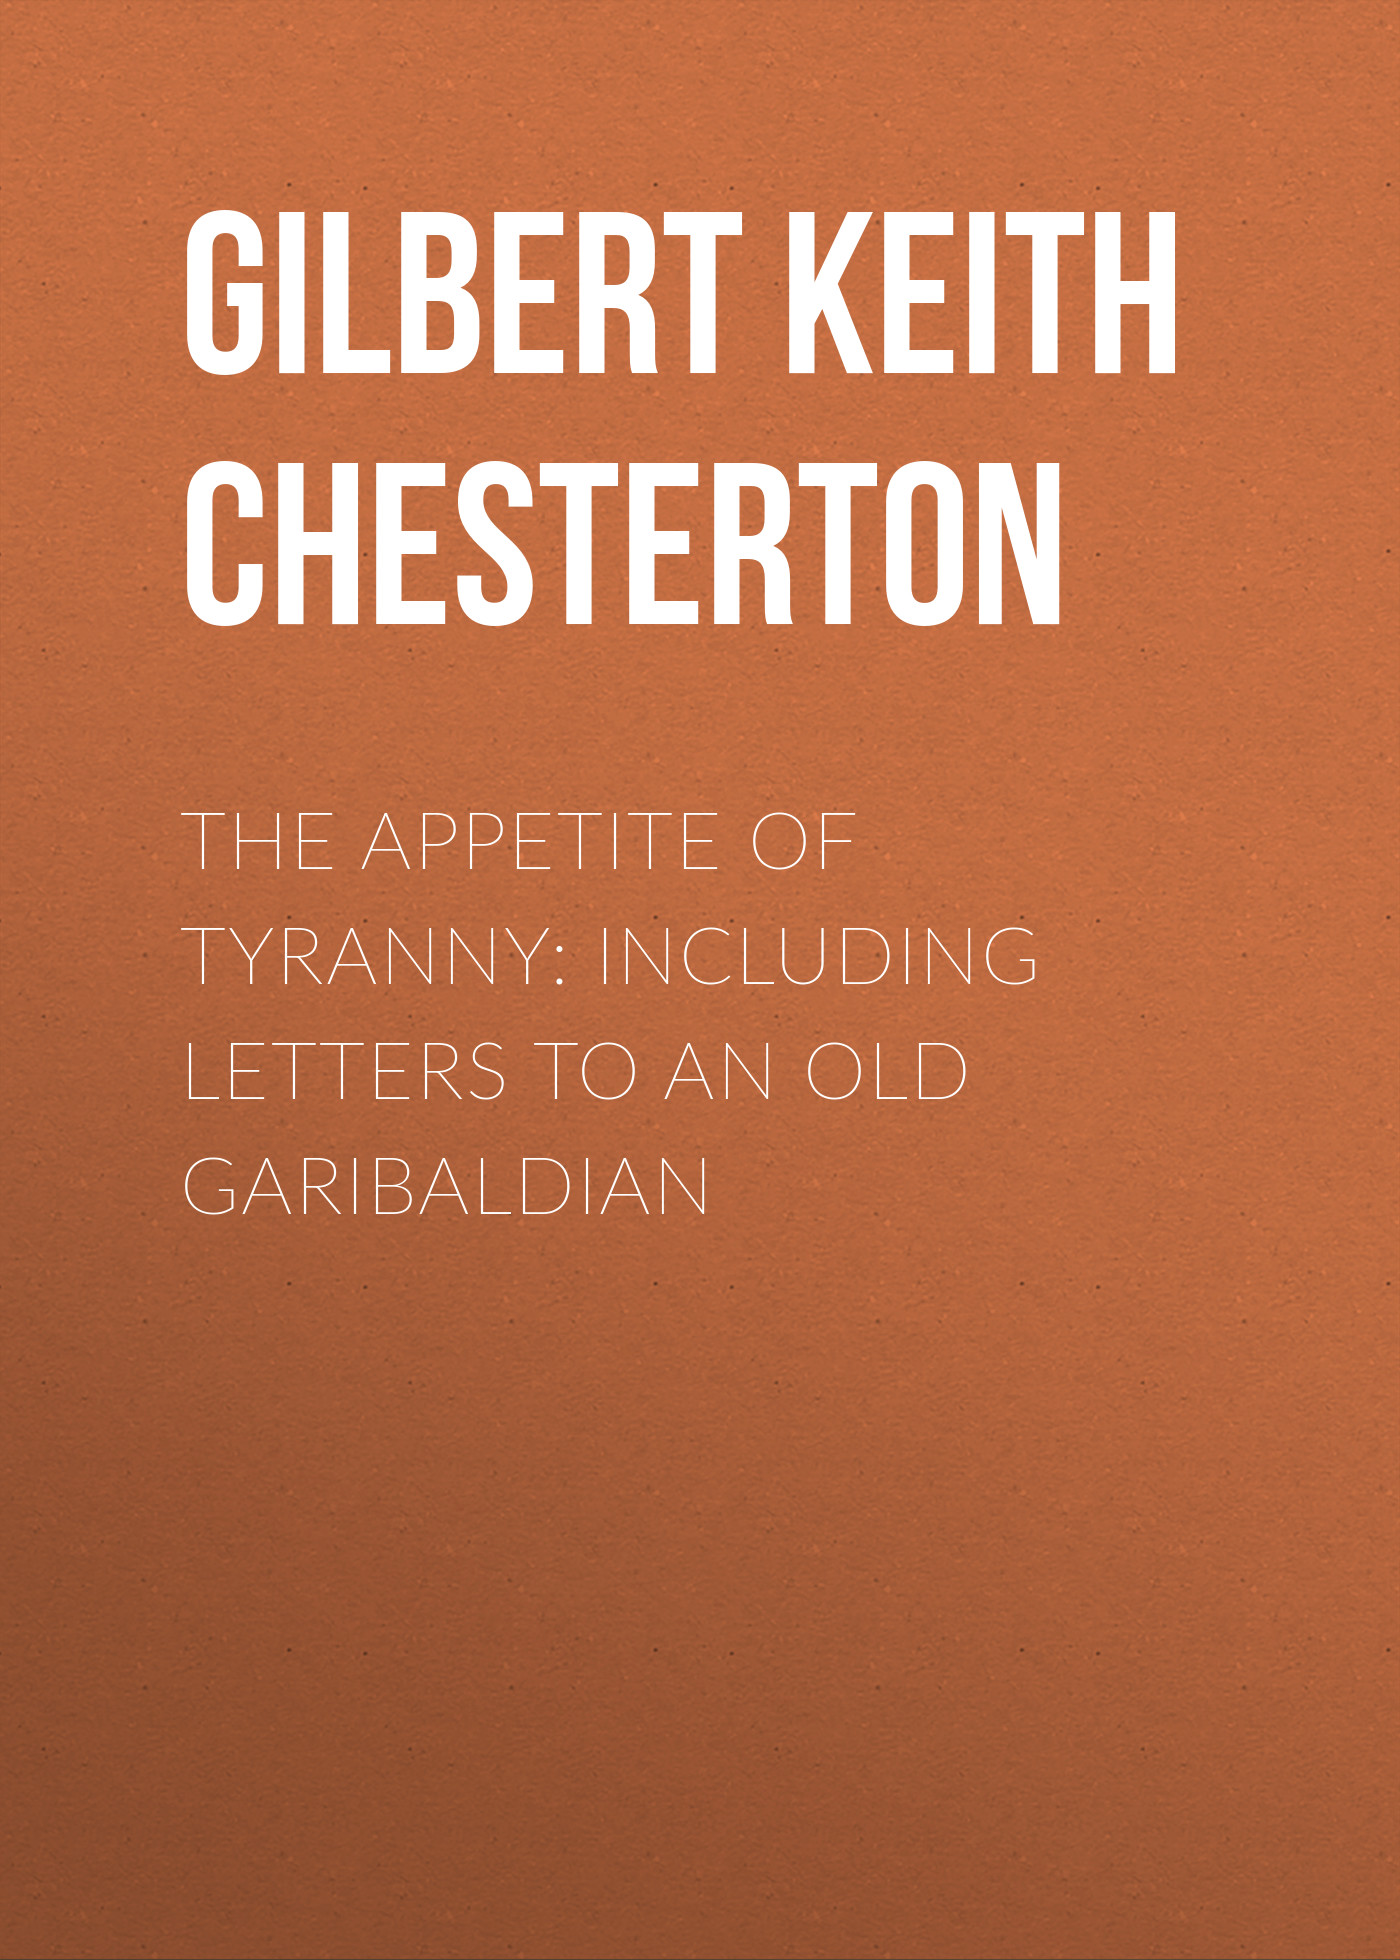 Gilbert Keith Chesterton The Appetite of Tyranny: Including Letters to an Old Garibaldian gorgeous embossed letters the old chokers necklace for women